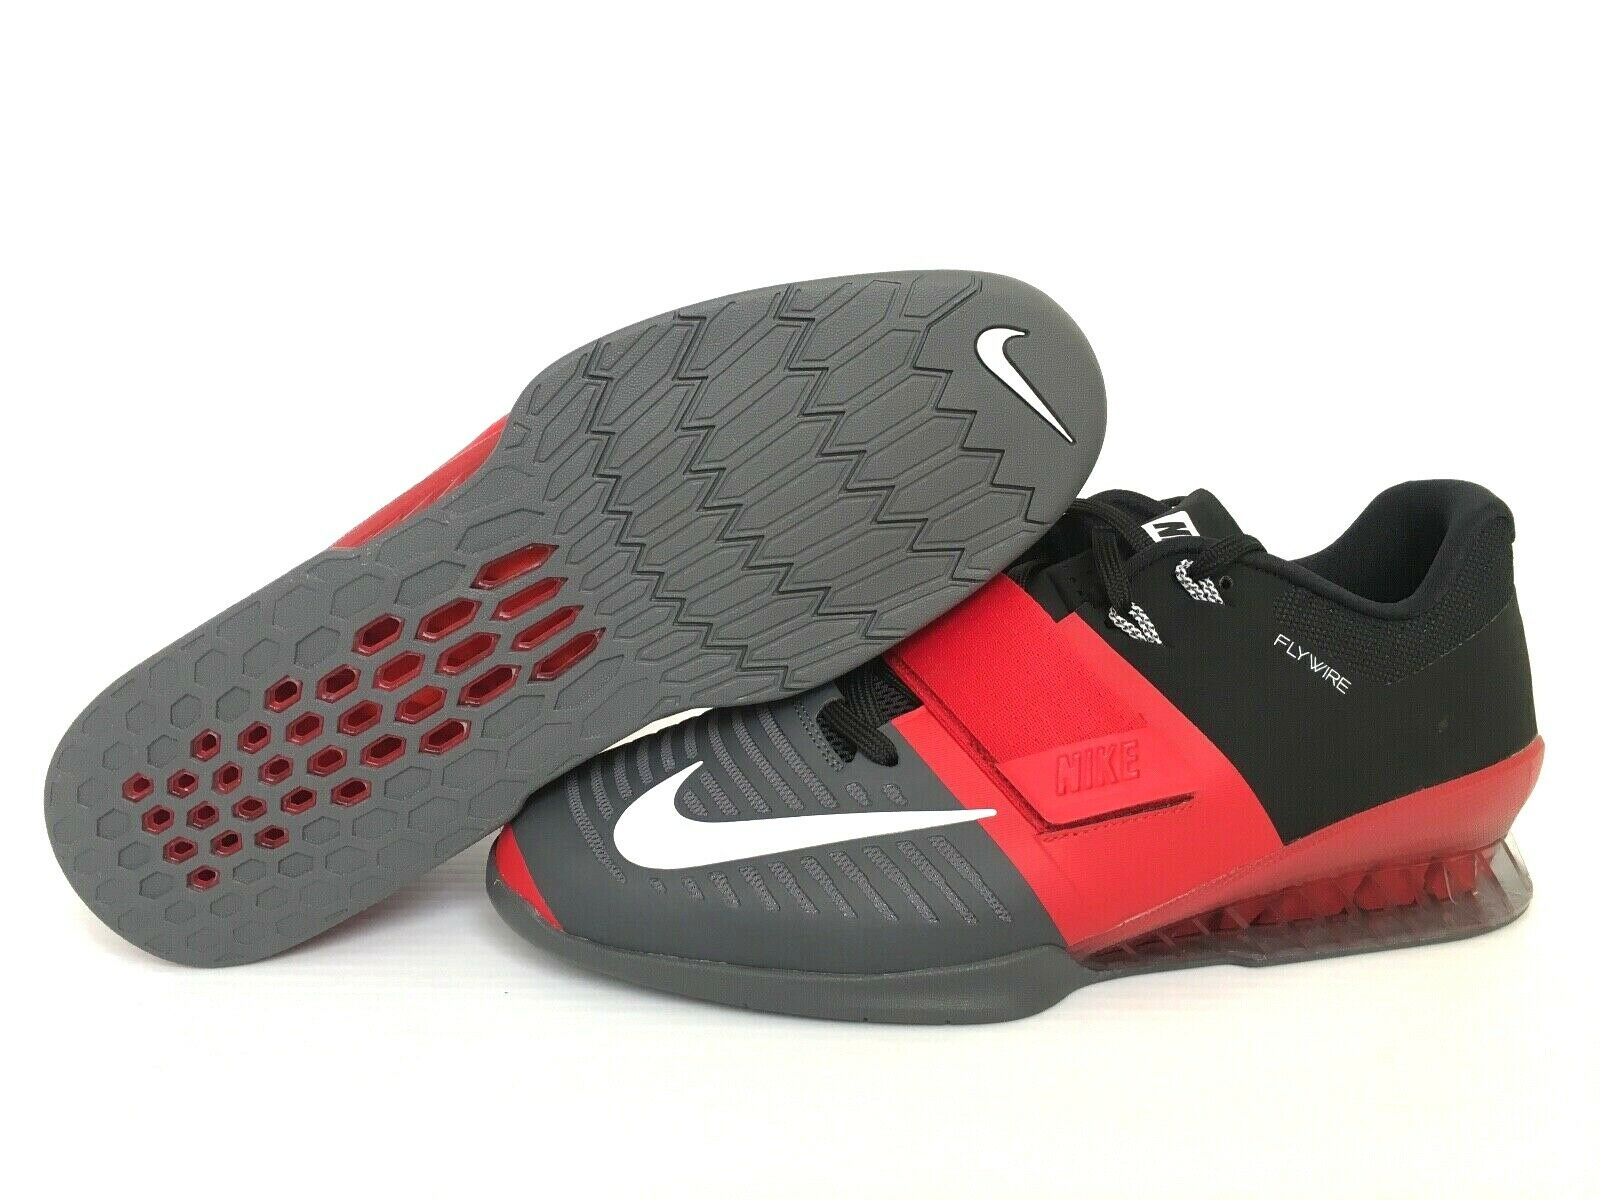 Nike Romaleos 3 Weightlifting CrossFit shoes Mens Size 11.5 Red Grey 852933-600